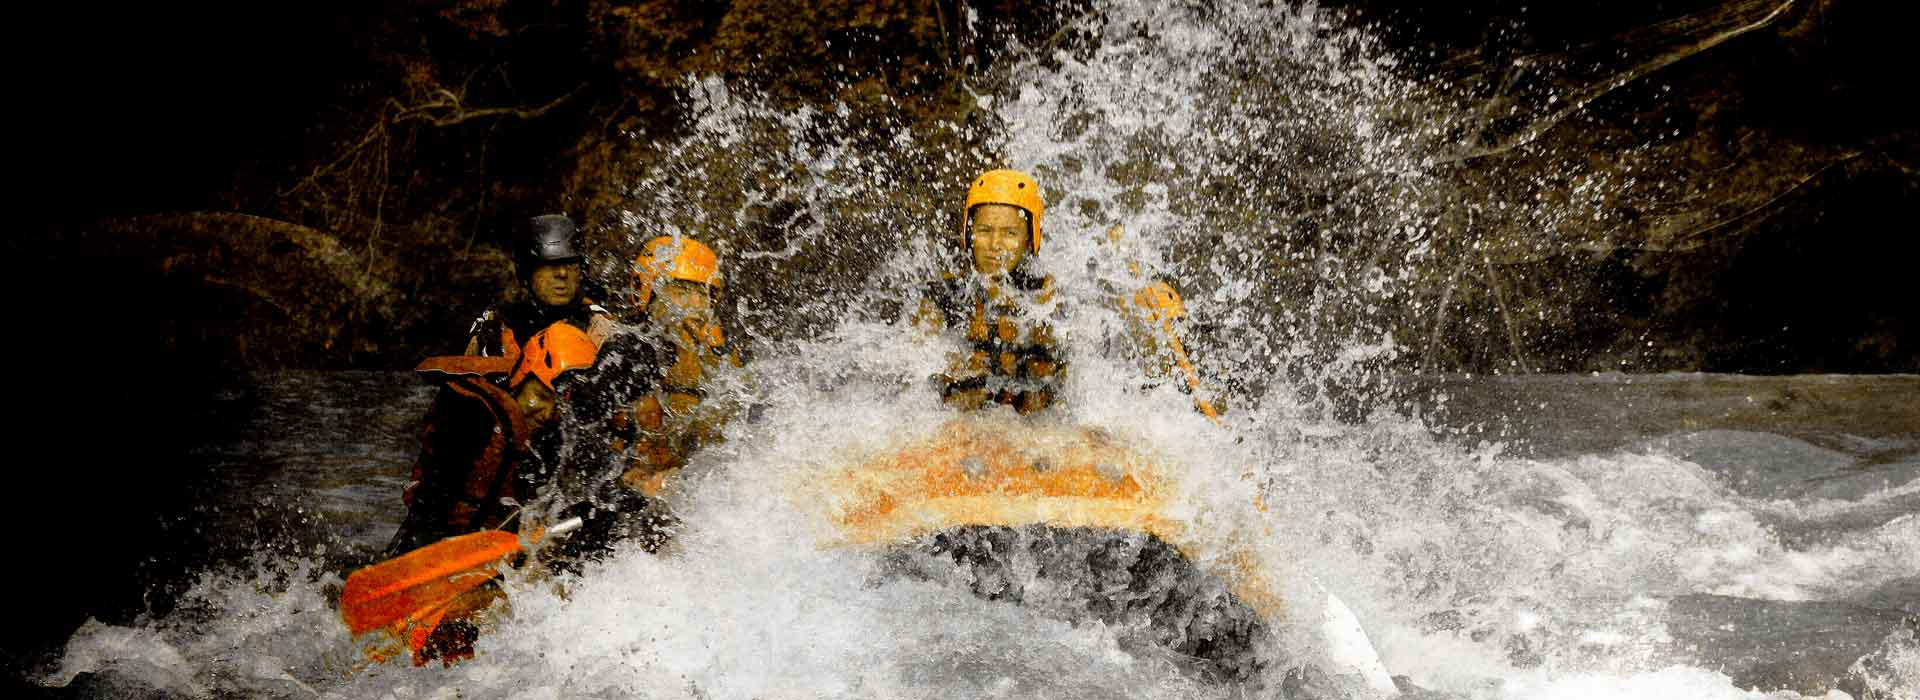 Rafting in Savoie, white water base Bourg-Saint-Maurice